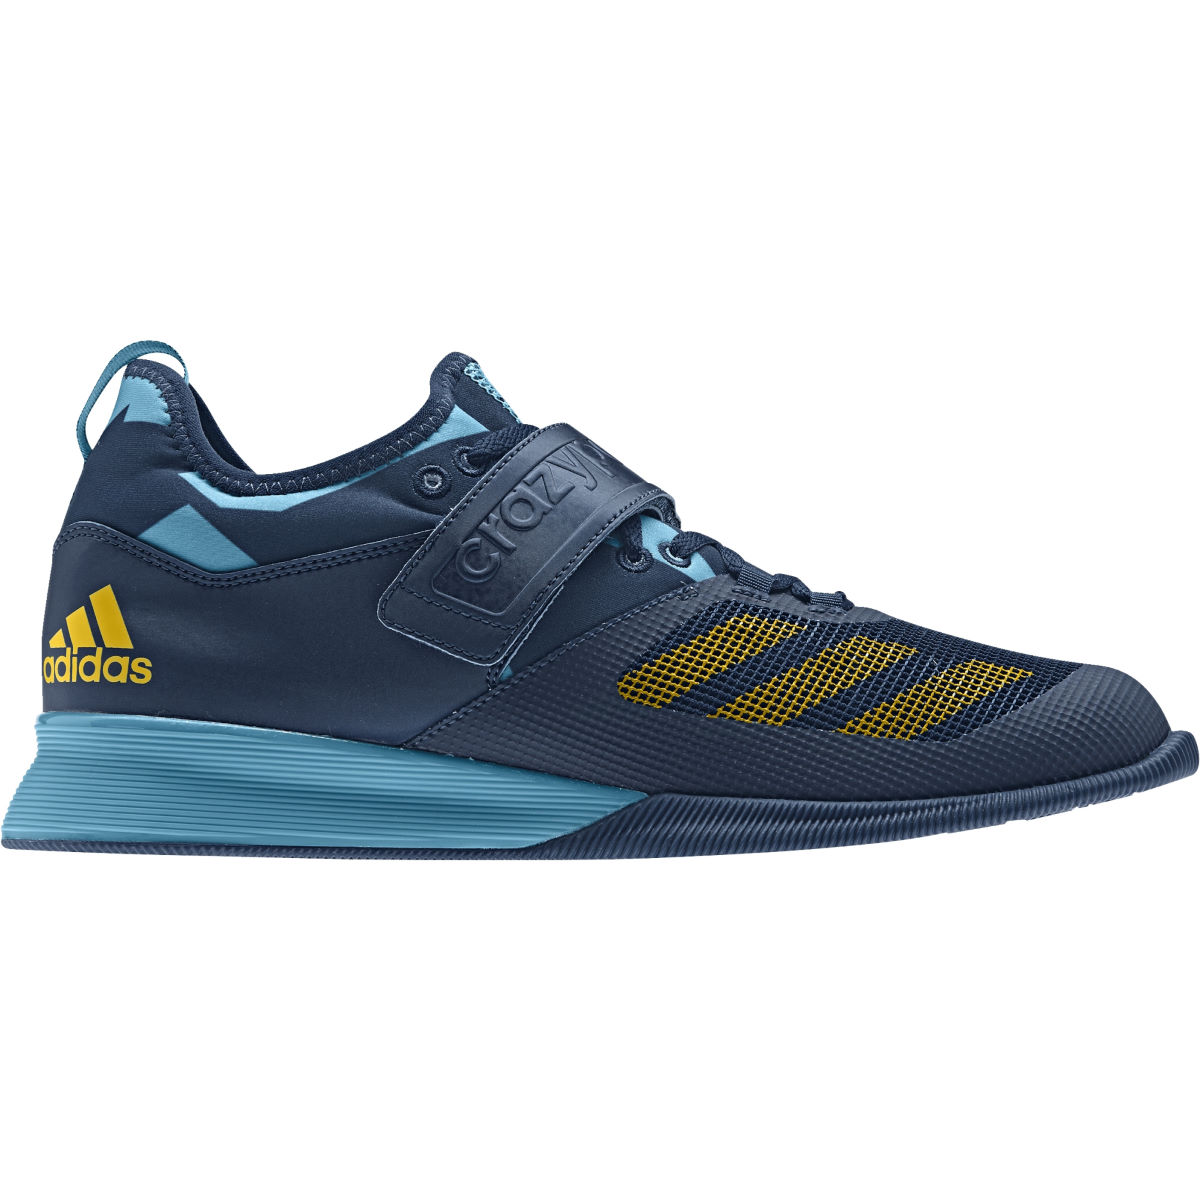 Zapatillas adidas Crazy Power - Zapatillas de entrenamiento con pesas